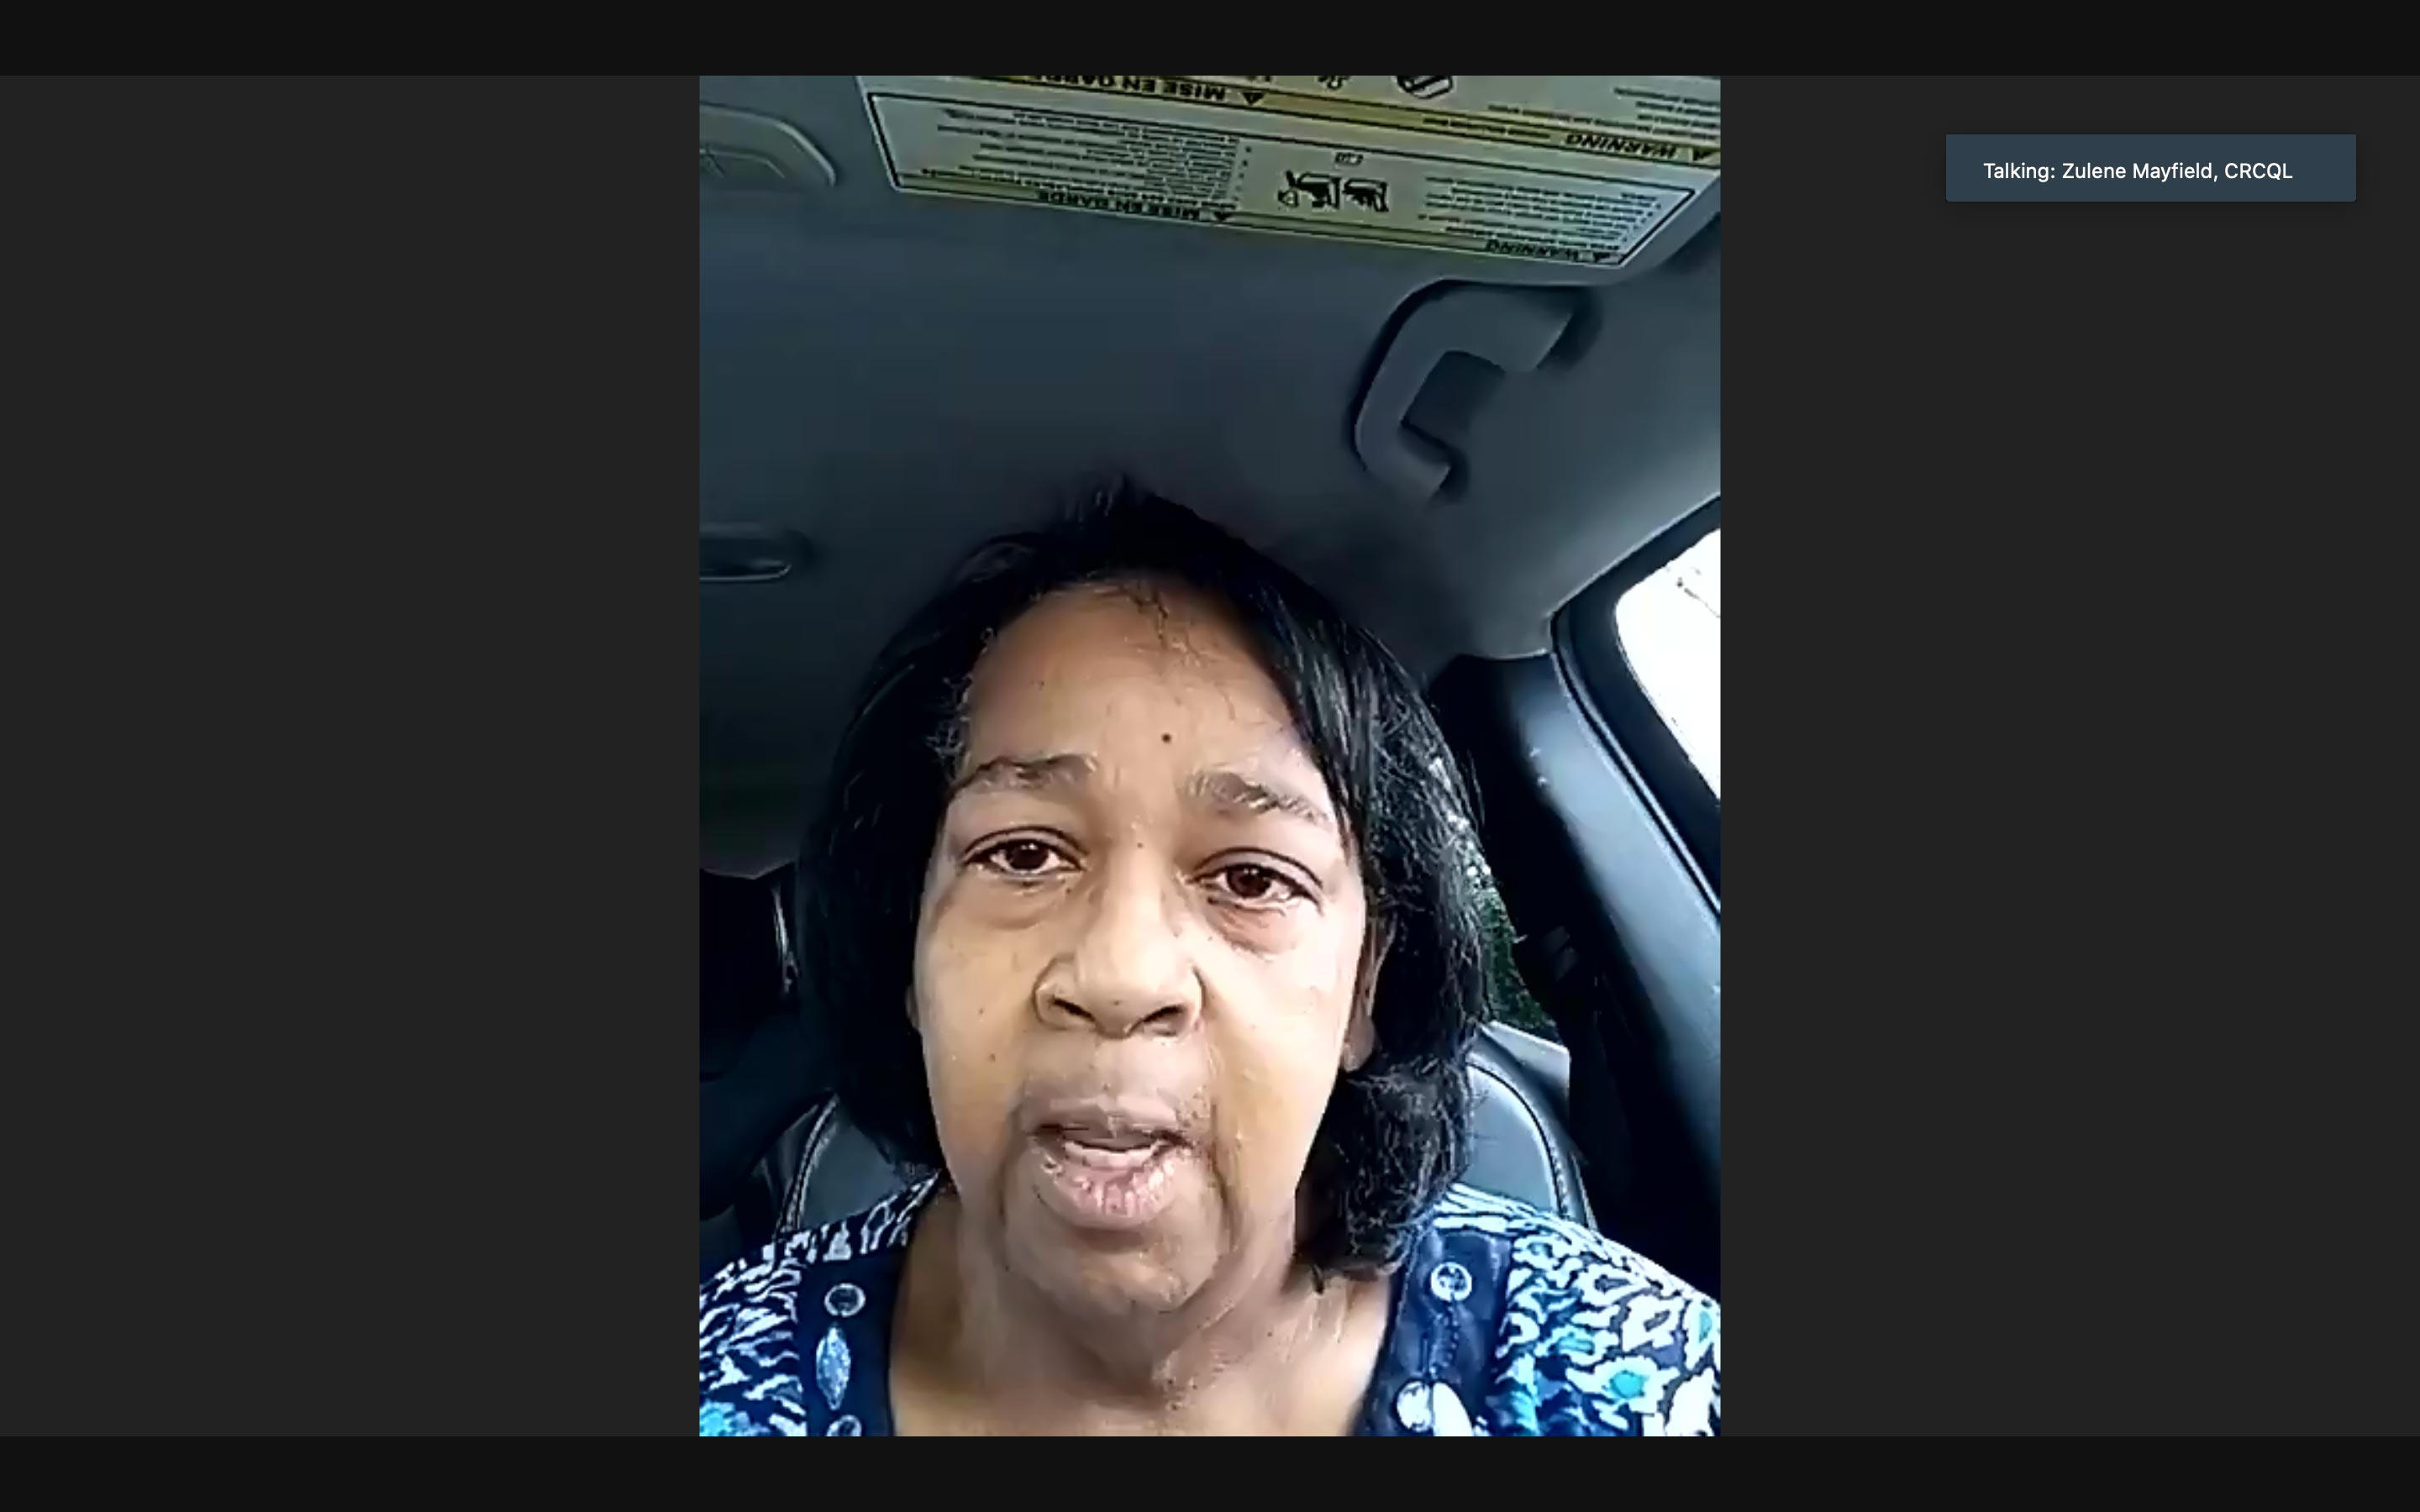 Zulene Mayfield, chair of the Chester Residents Concerned for Quality Living. (Screenshot)